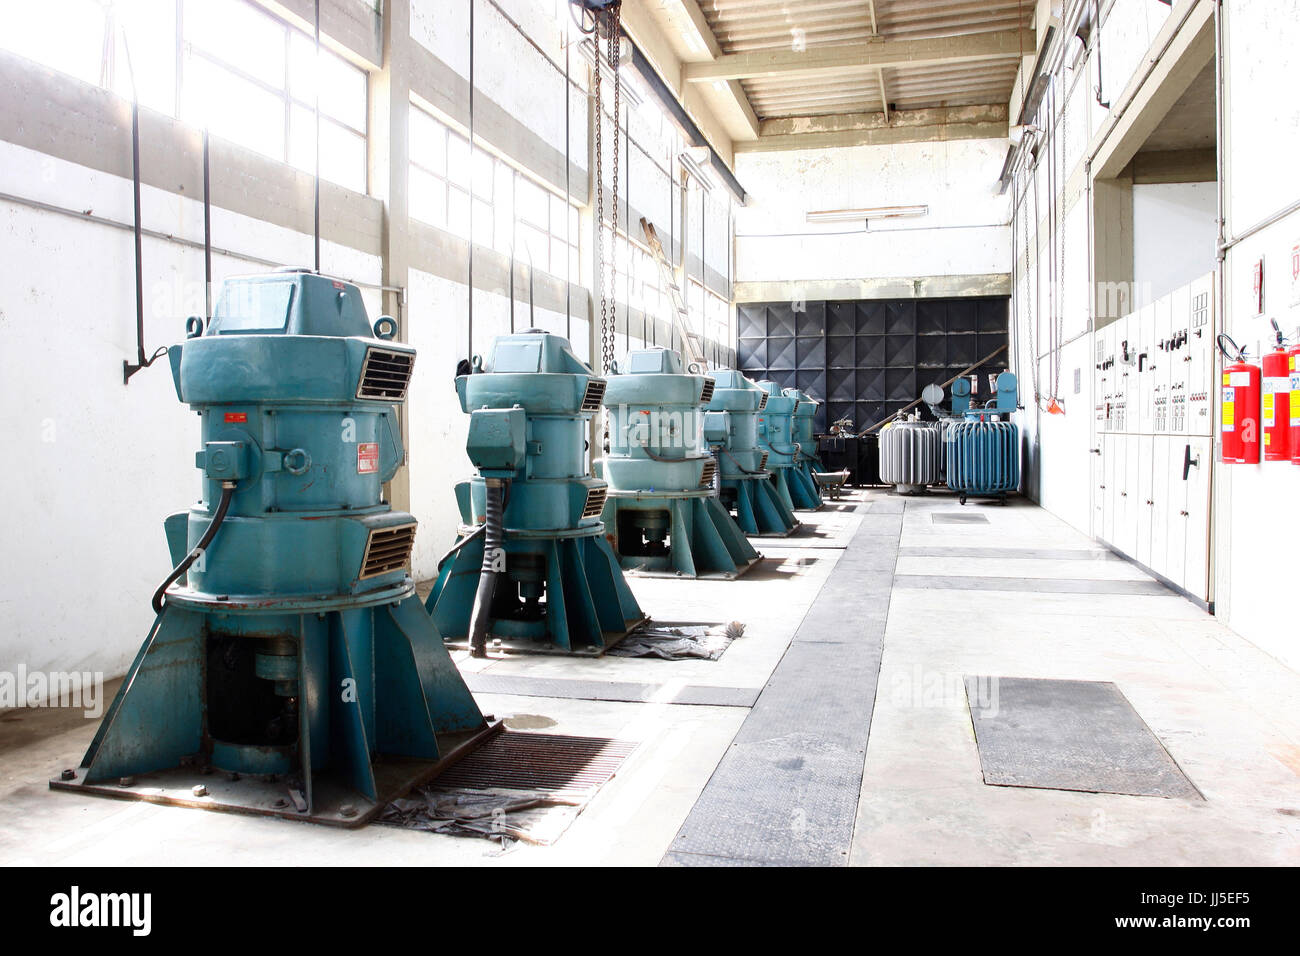 Water pump, industry, factory, Brazil - Stock Image